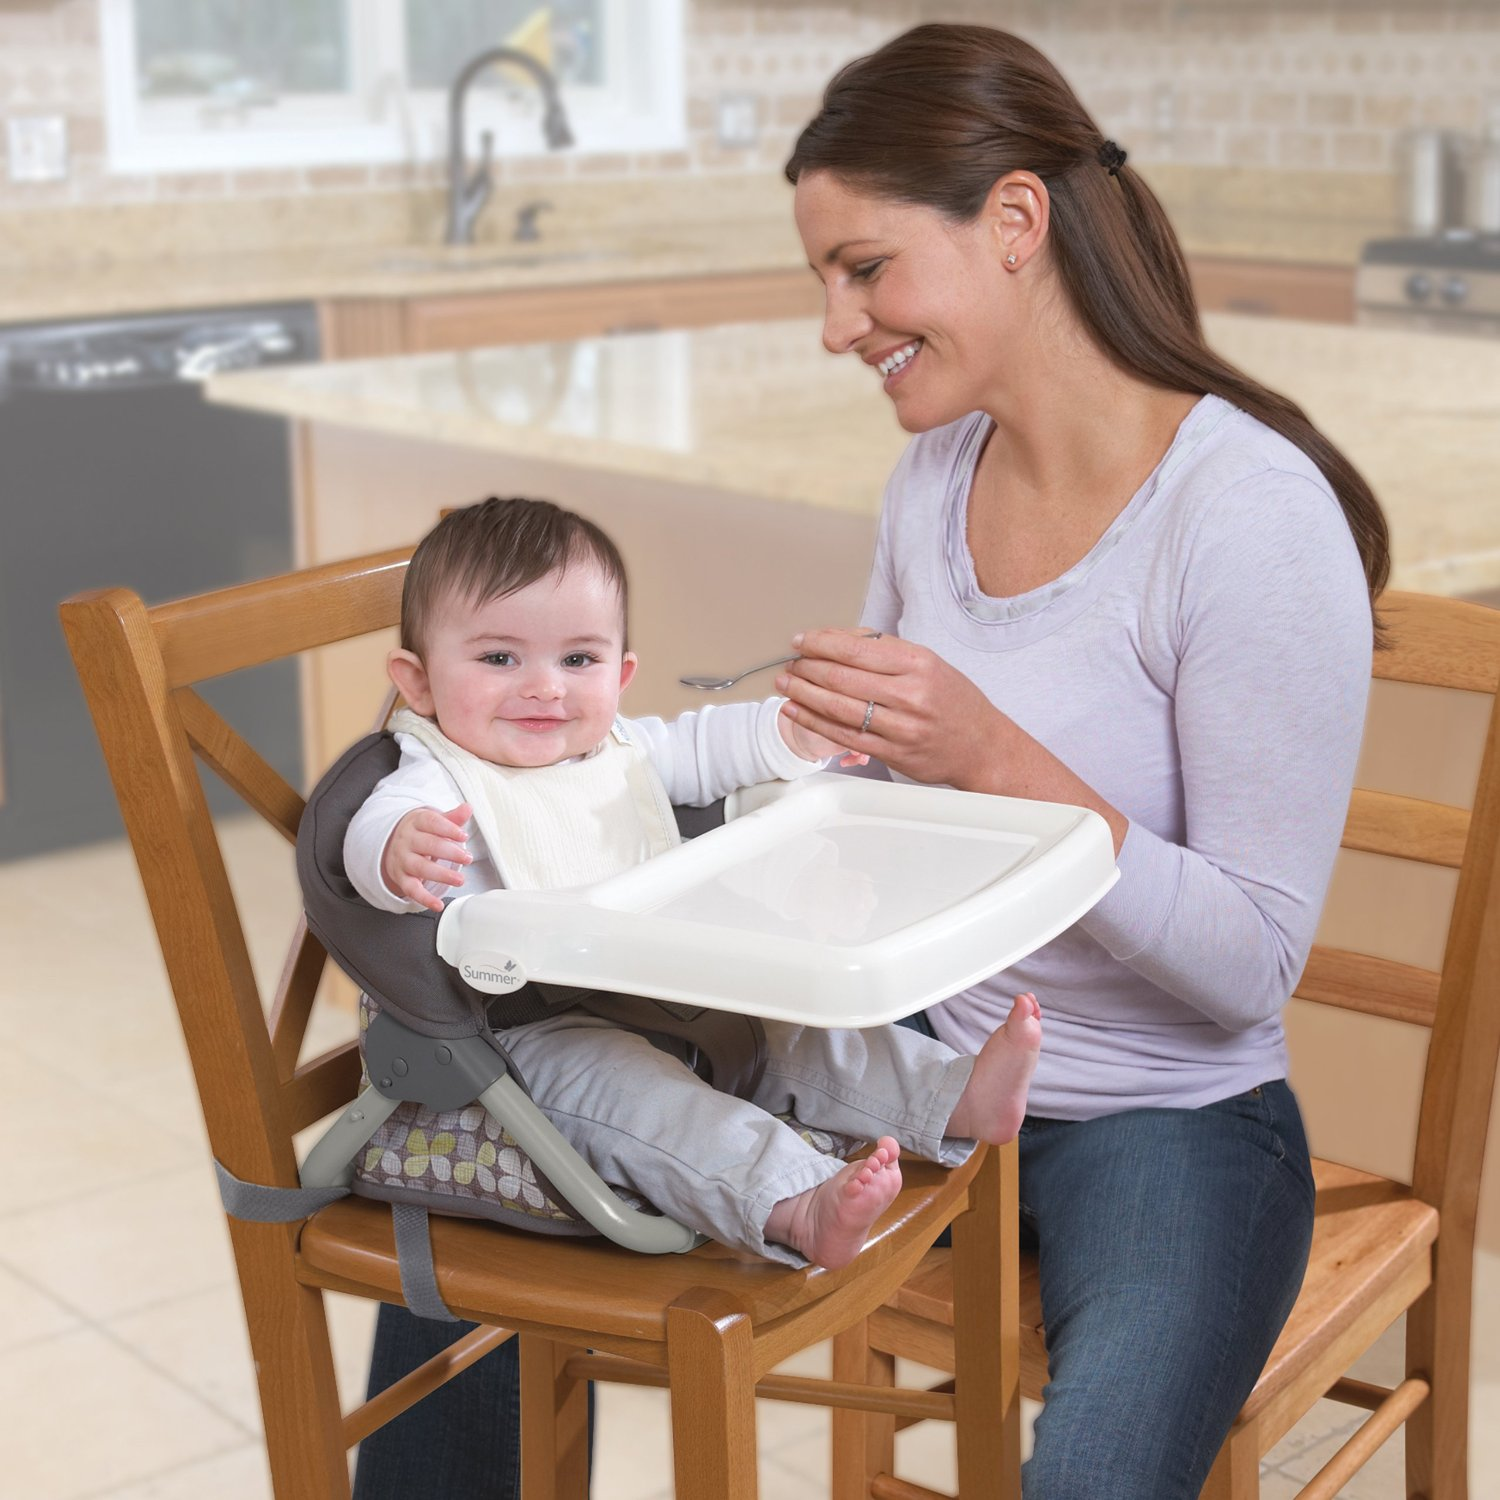 Baby High Chair that Attaches to Table: A Neat Idea